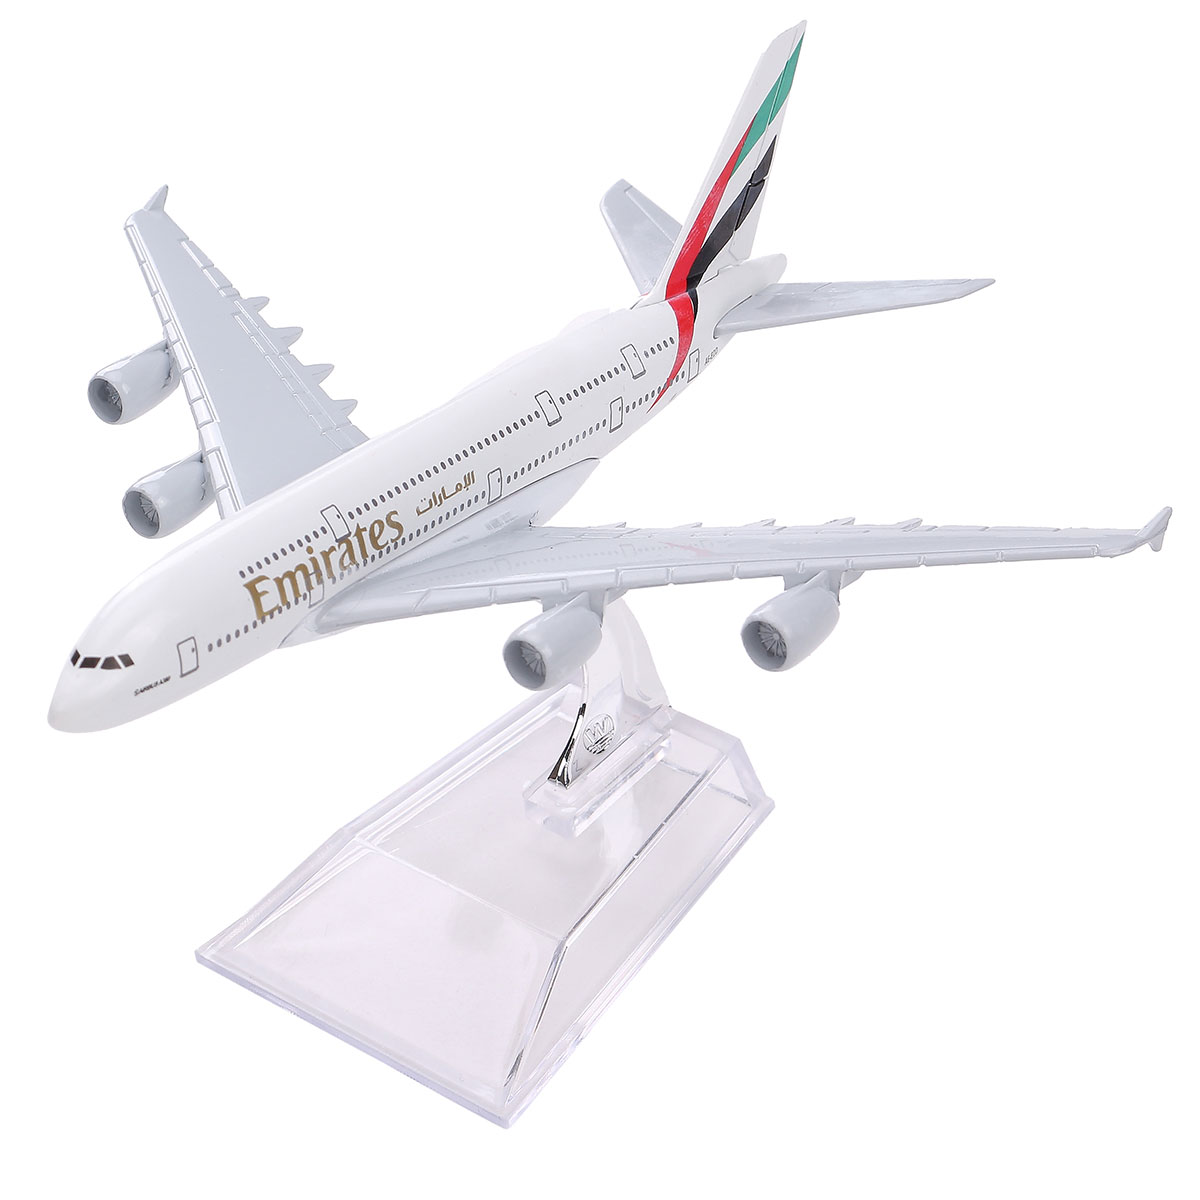 New Airbus380 Emirates Airlines A-380 Aircraft Aeroplan 16cm High Simulation Diecast Model United Arab Emirates A380(China (Mainland))